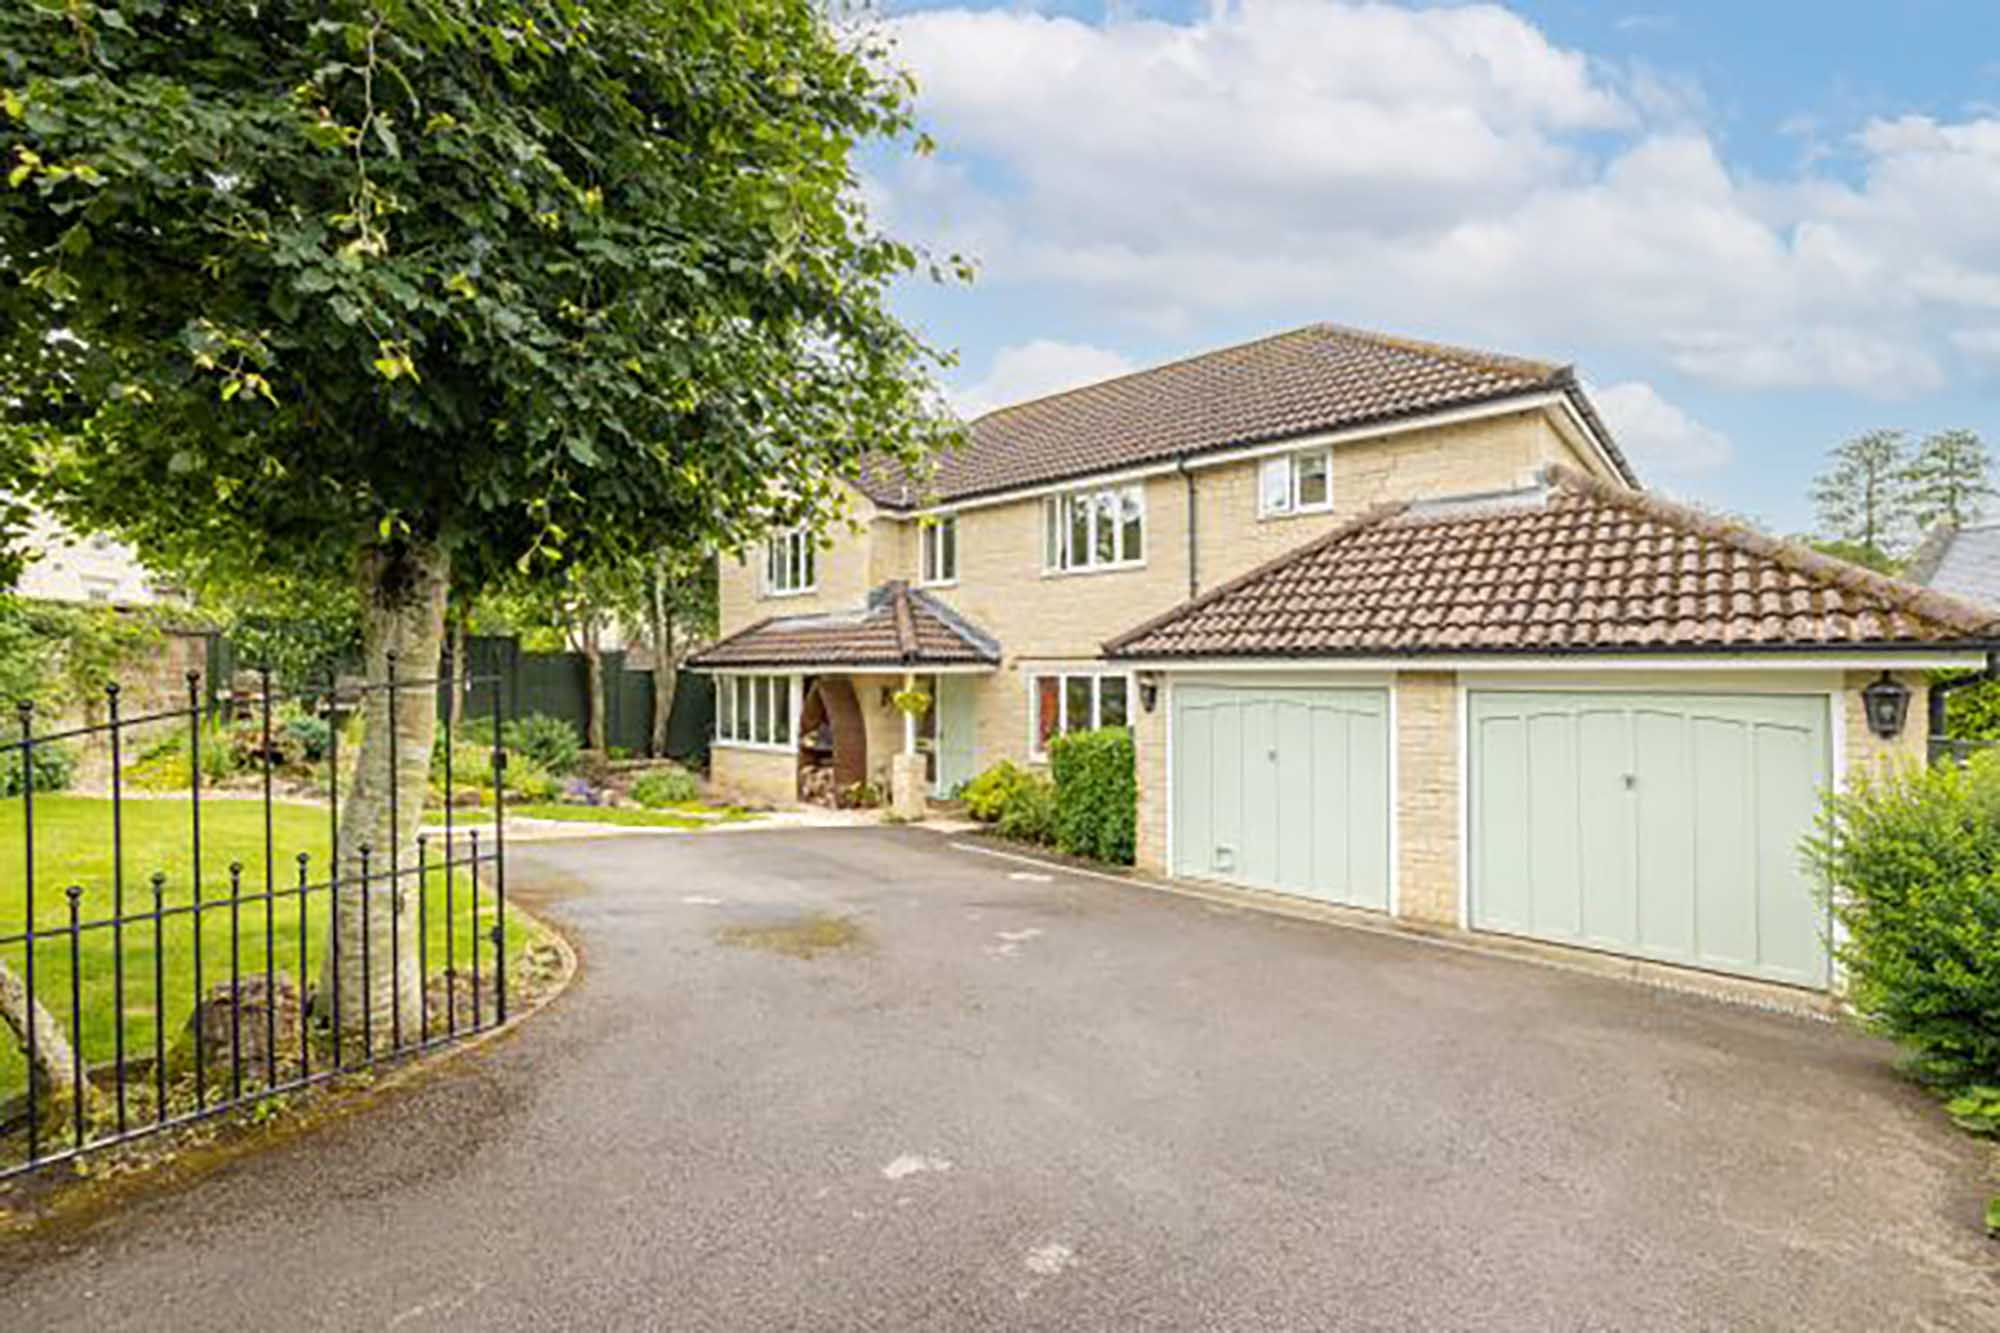 Family home with extra large garden